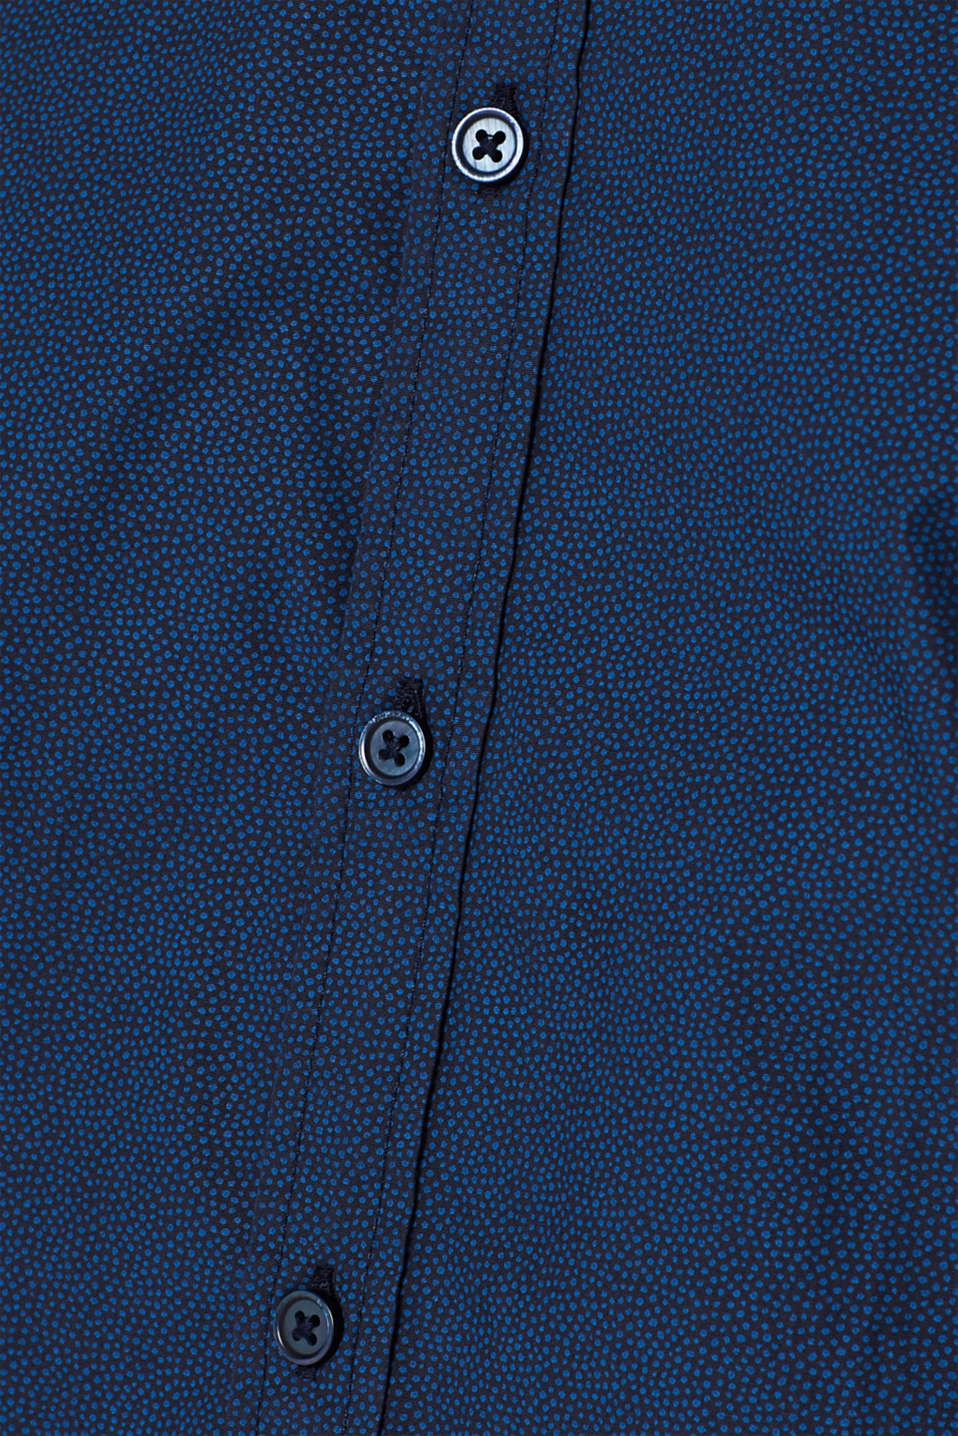 Shirt with micro print, 100% cotton, NAVY, detail image number 4